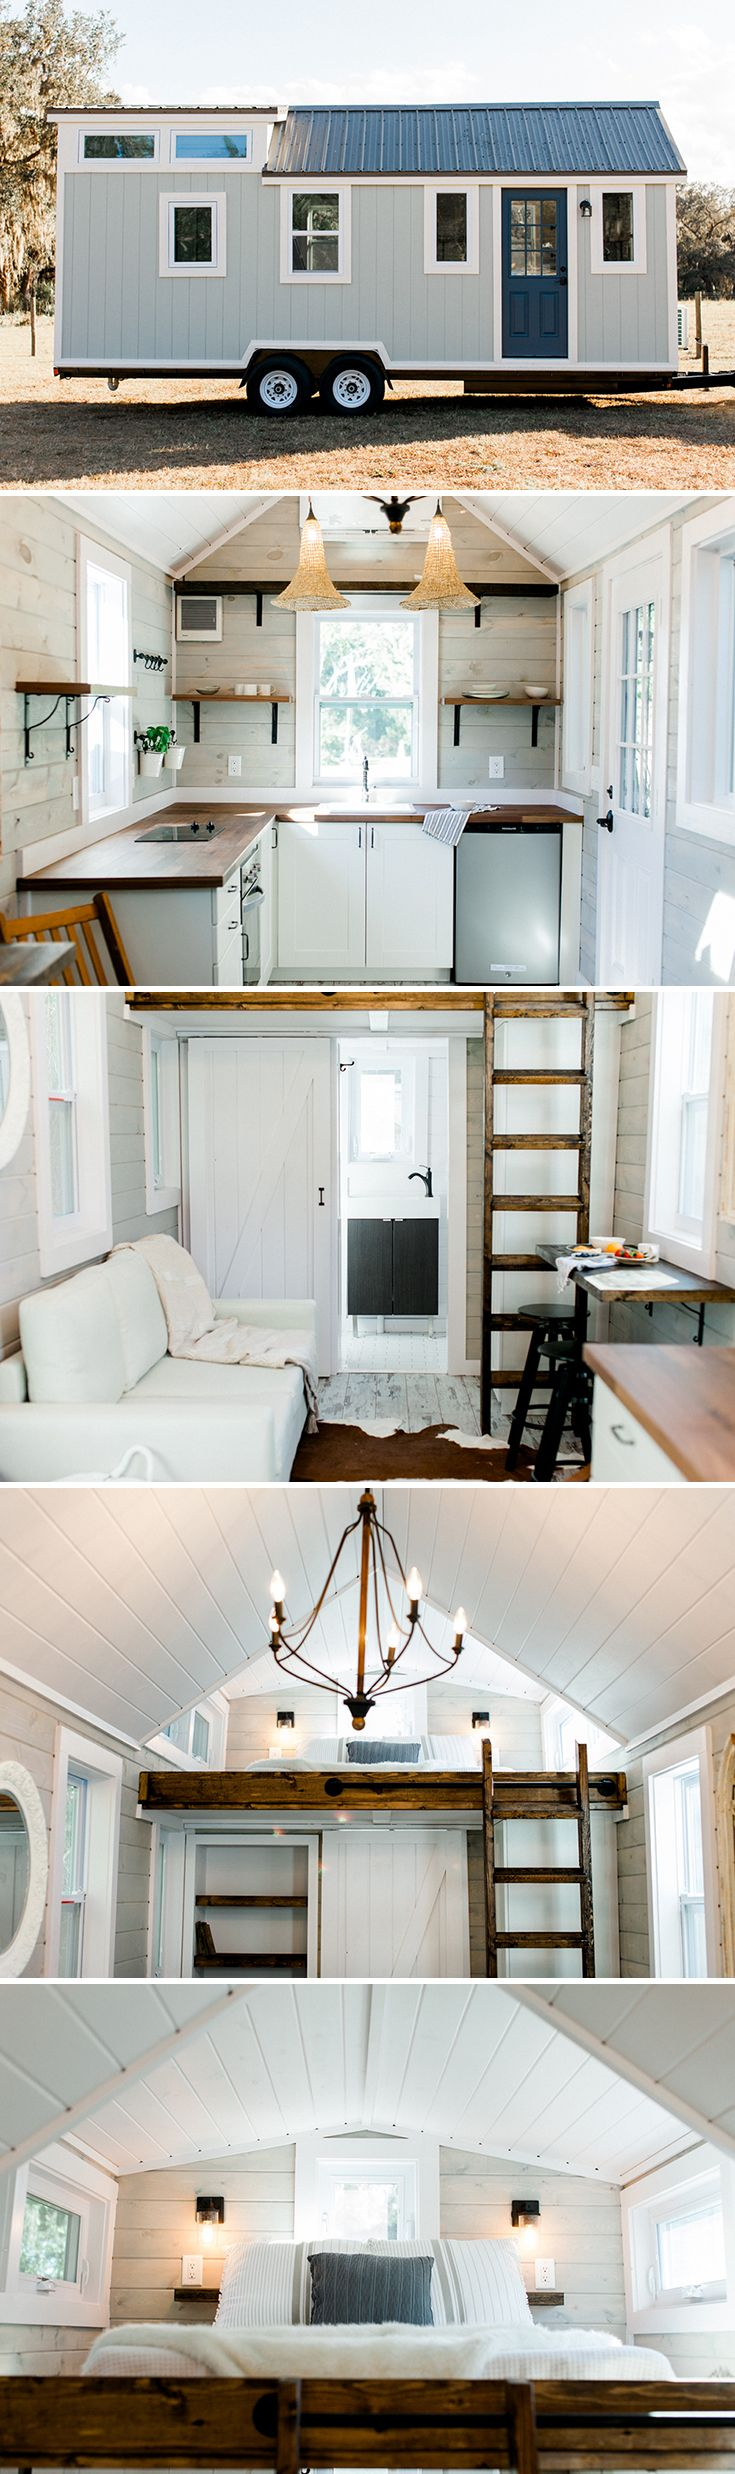 25 best ideas about tiny homes interior on pinterest tiny homes mini homes and mini houses - Homes Interior Design